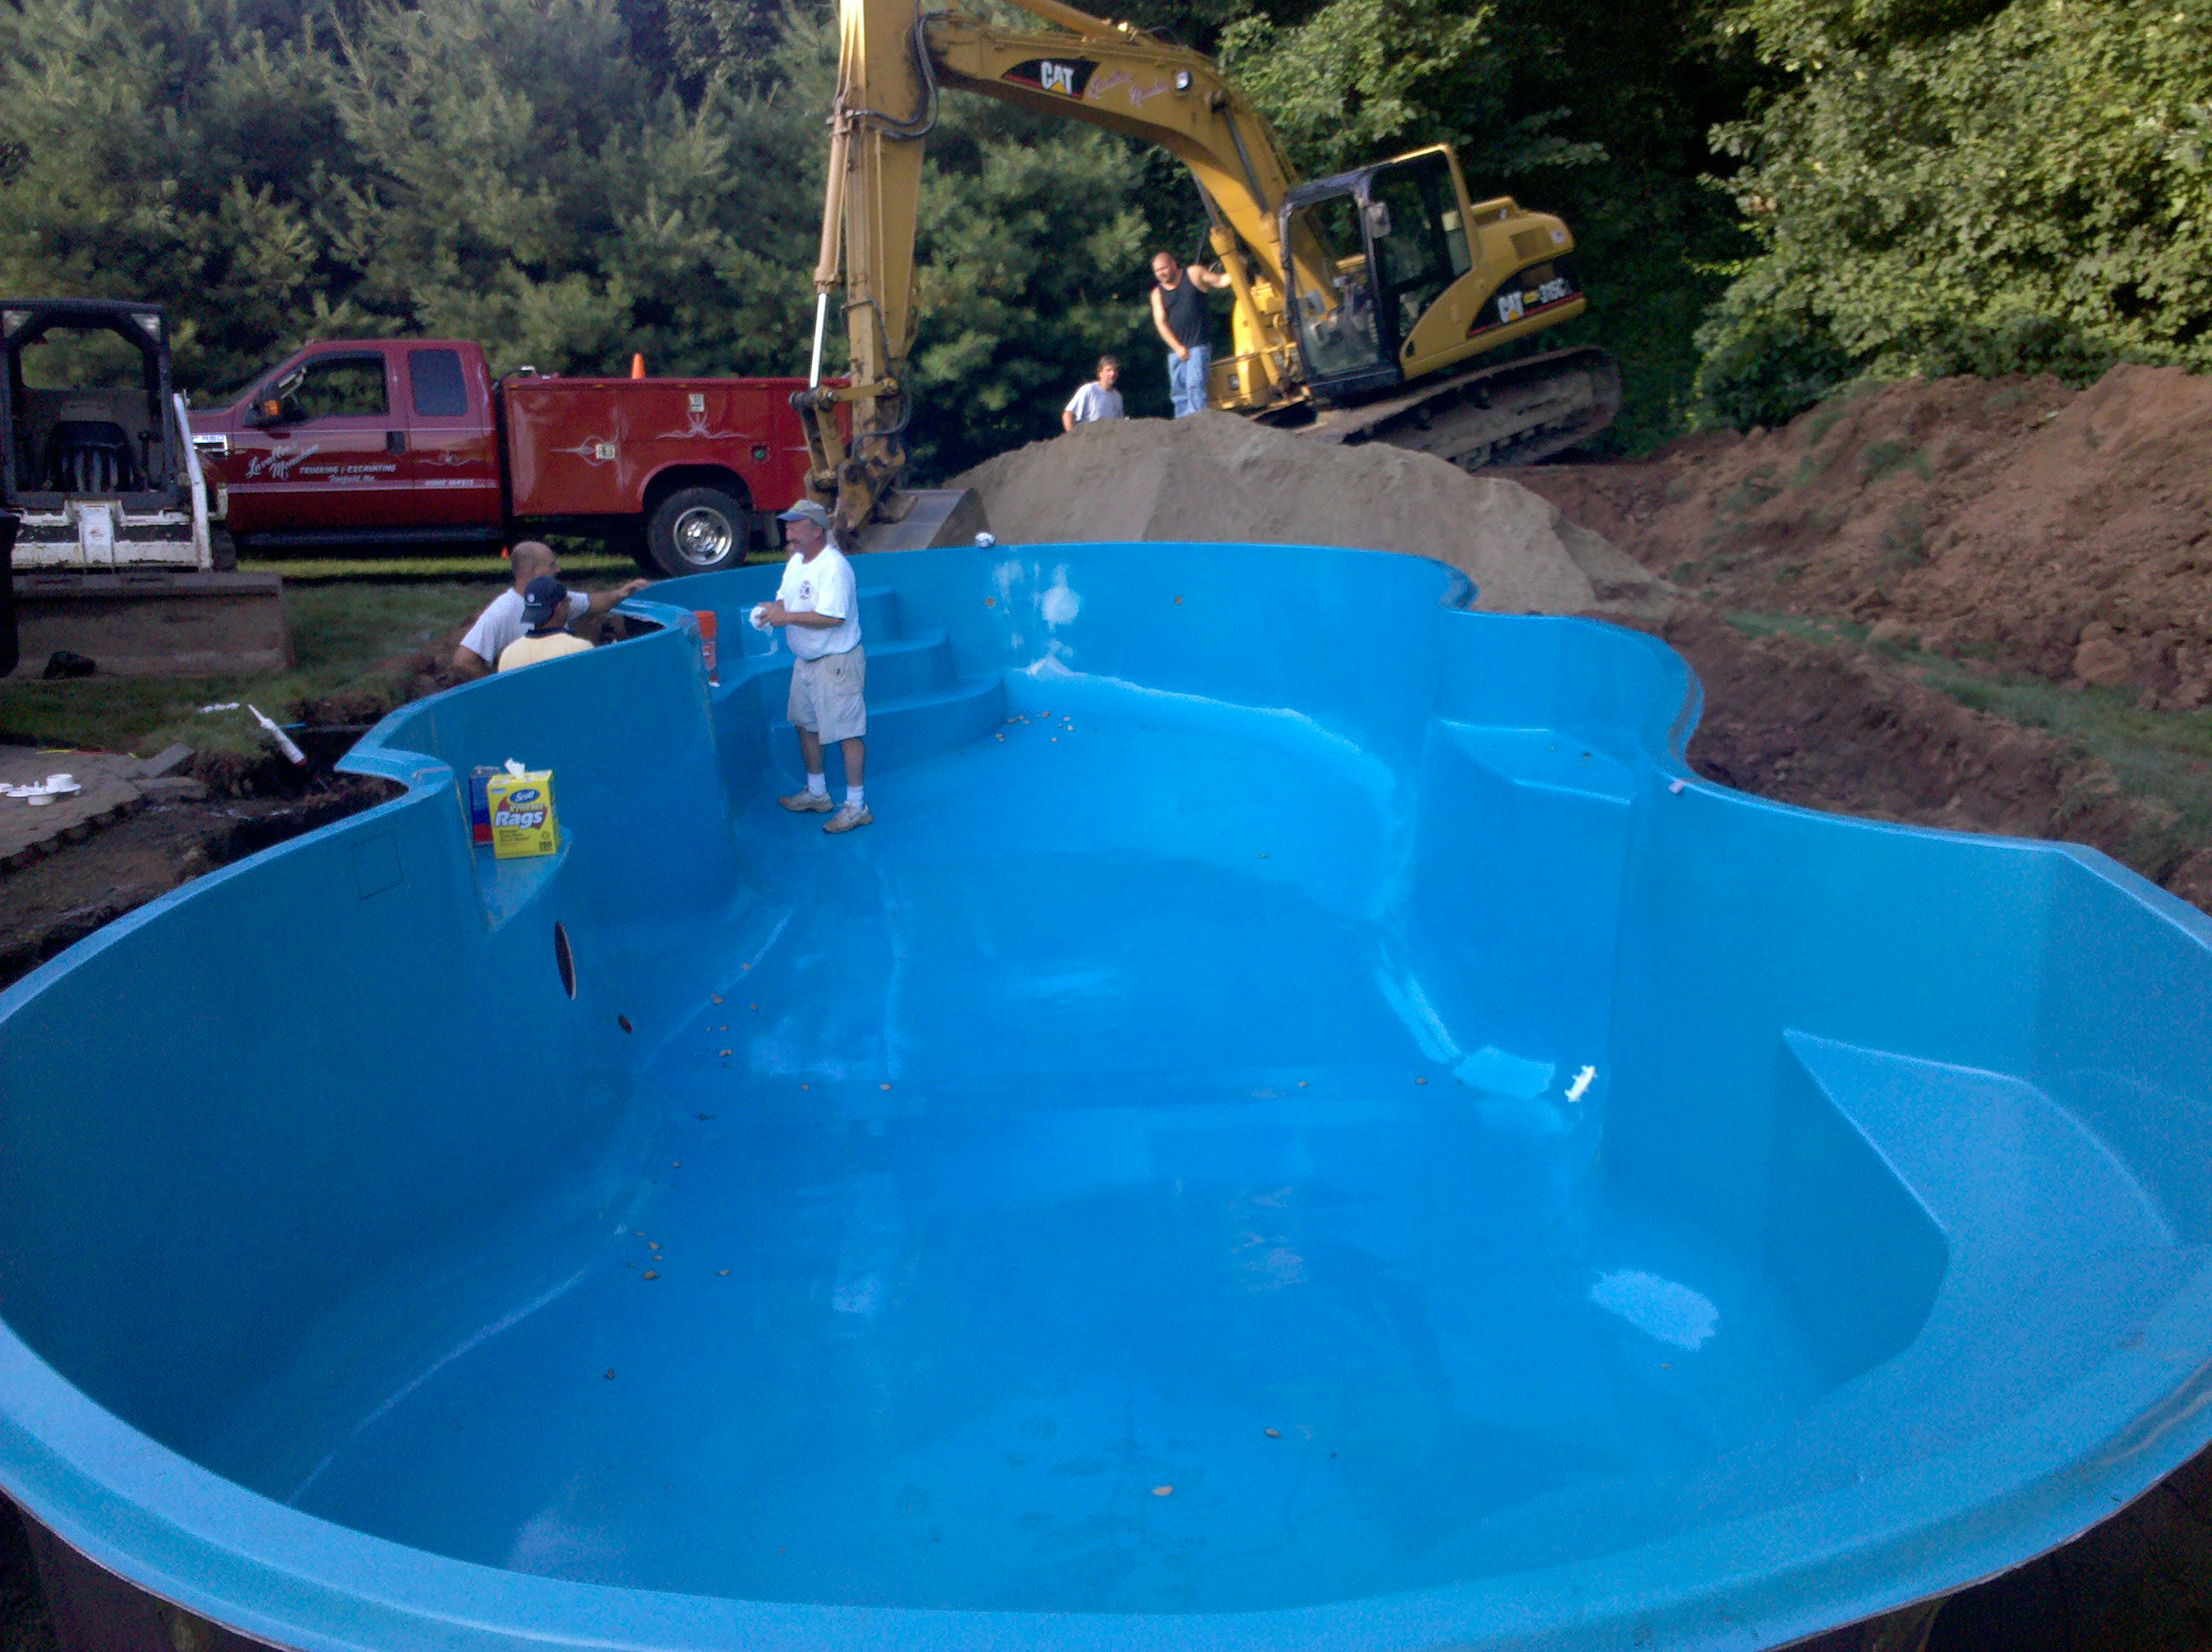 How To Install A San Juan Fiberglass Pool In Just 2 Days